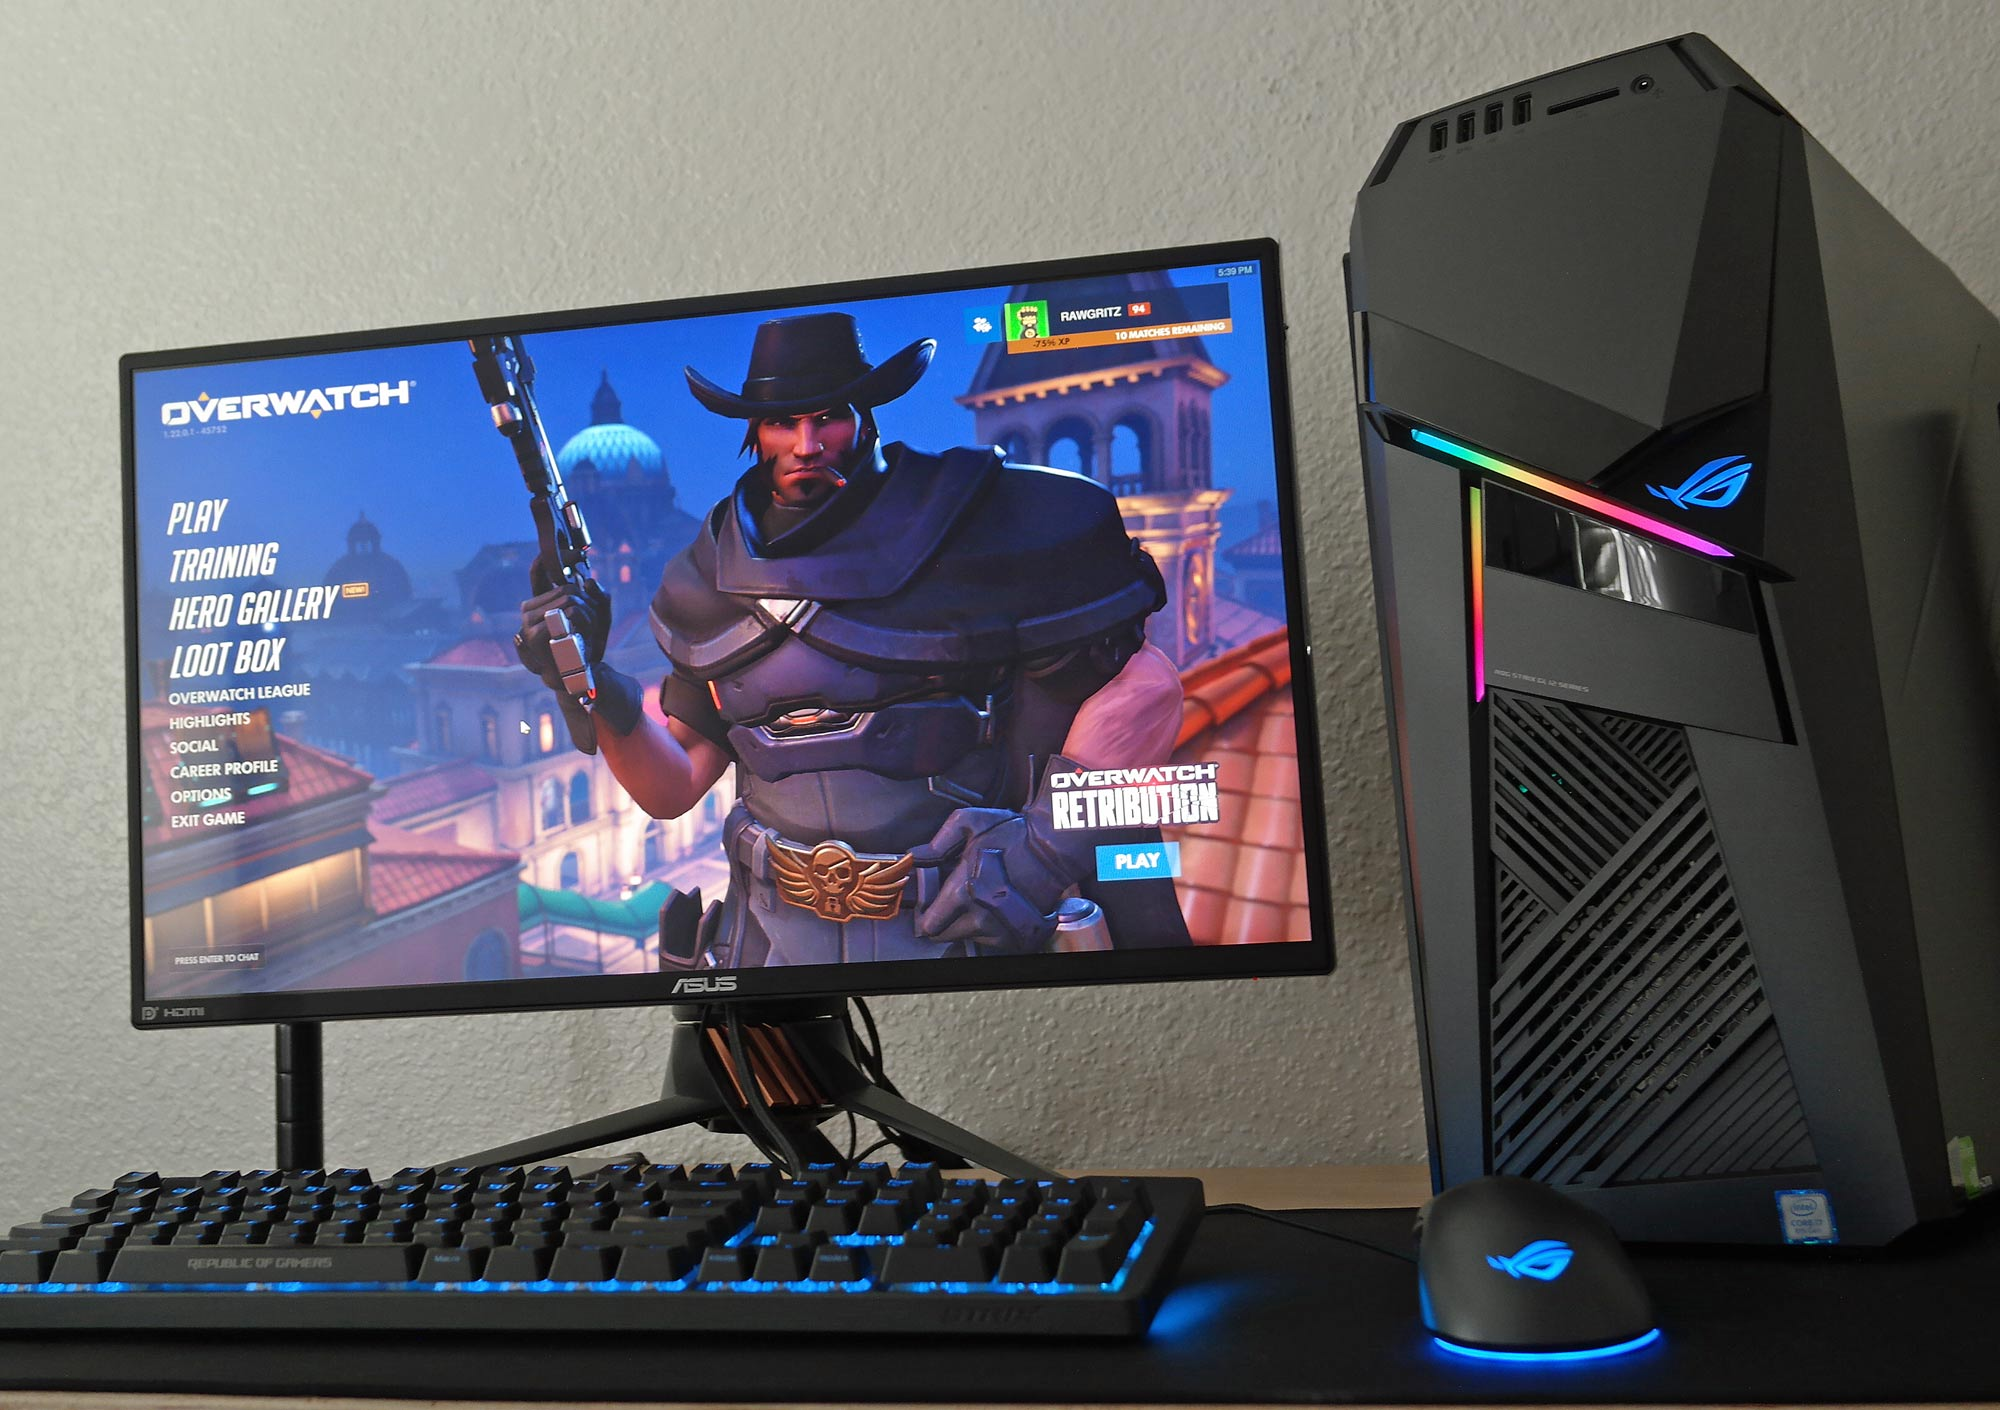 The ROG Strix GL12 brings tournament-grade performance in a compact